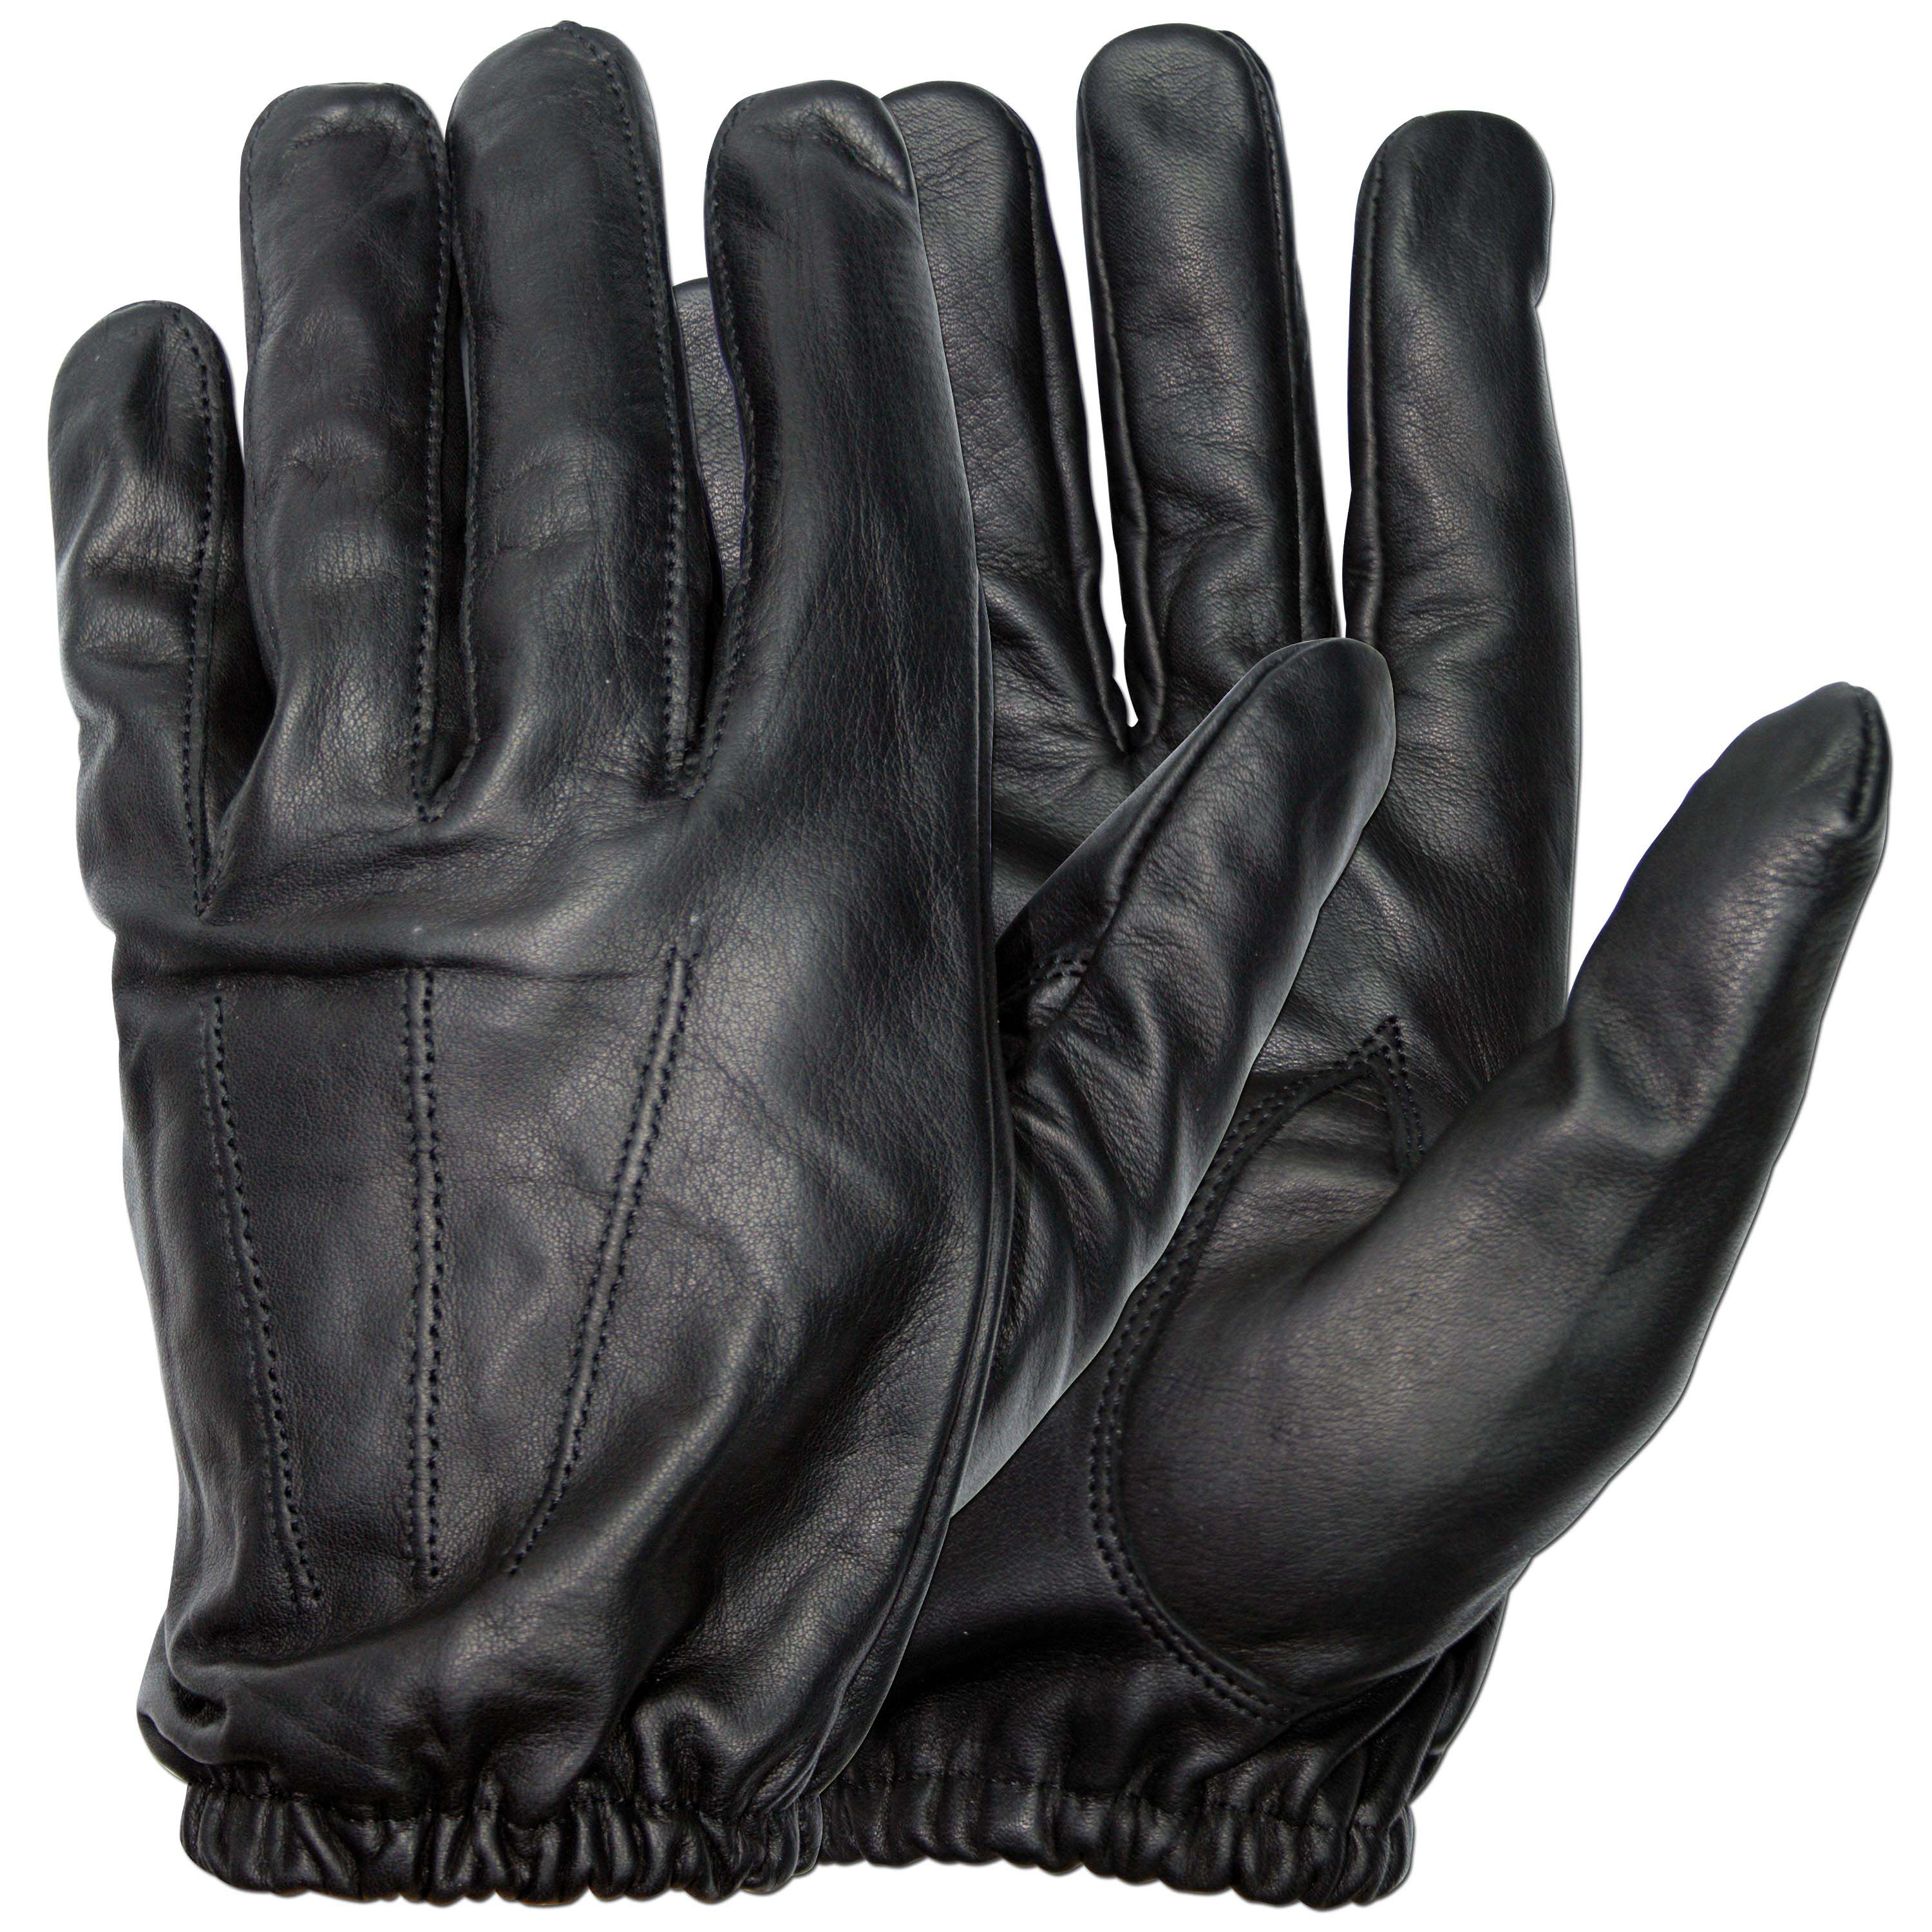 Police Search Gloves